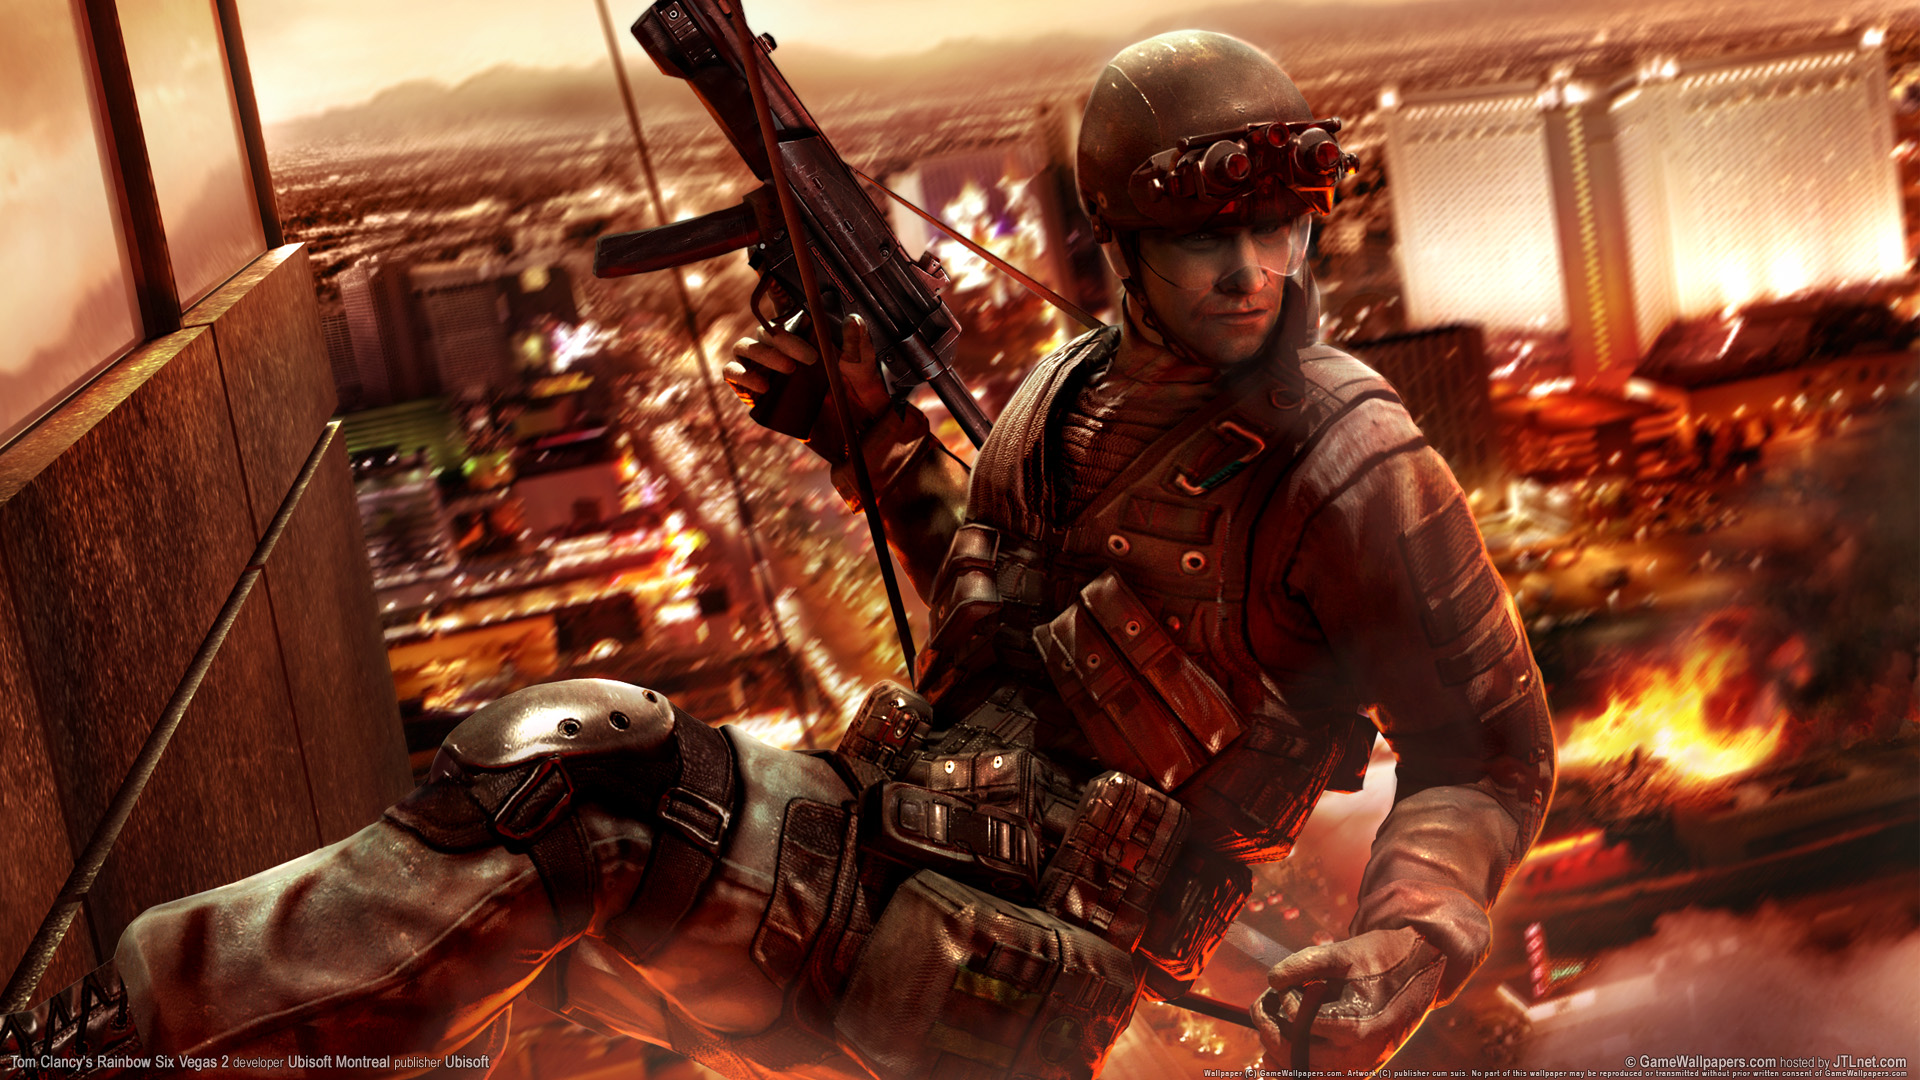 Tom clancys rainbow six vegas Wallpapers HD Wallpapers 1920x1080